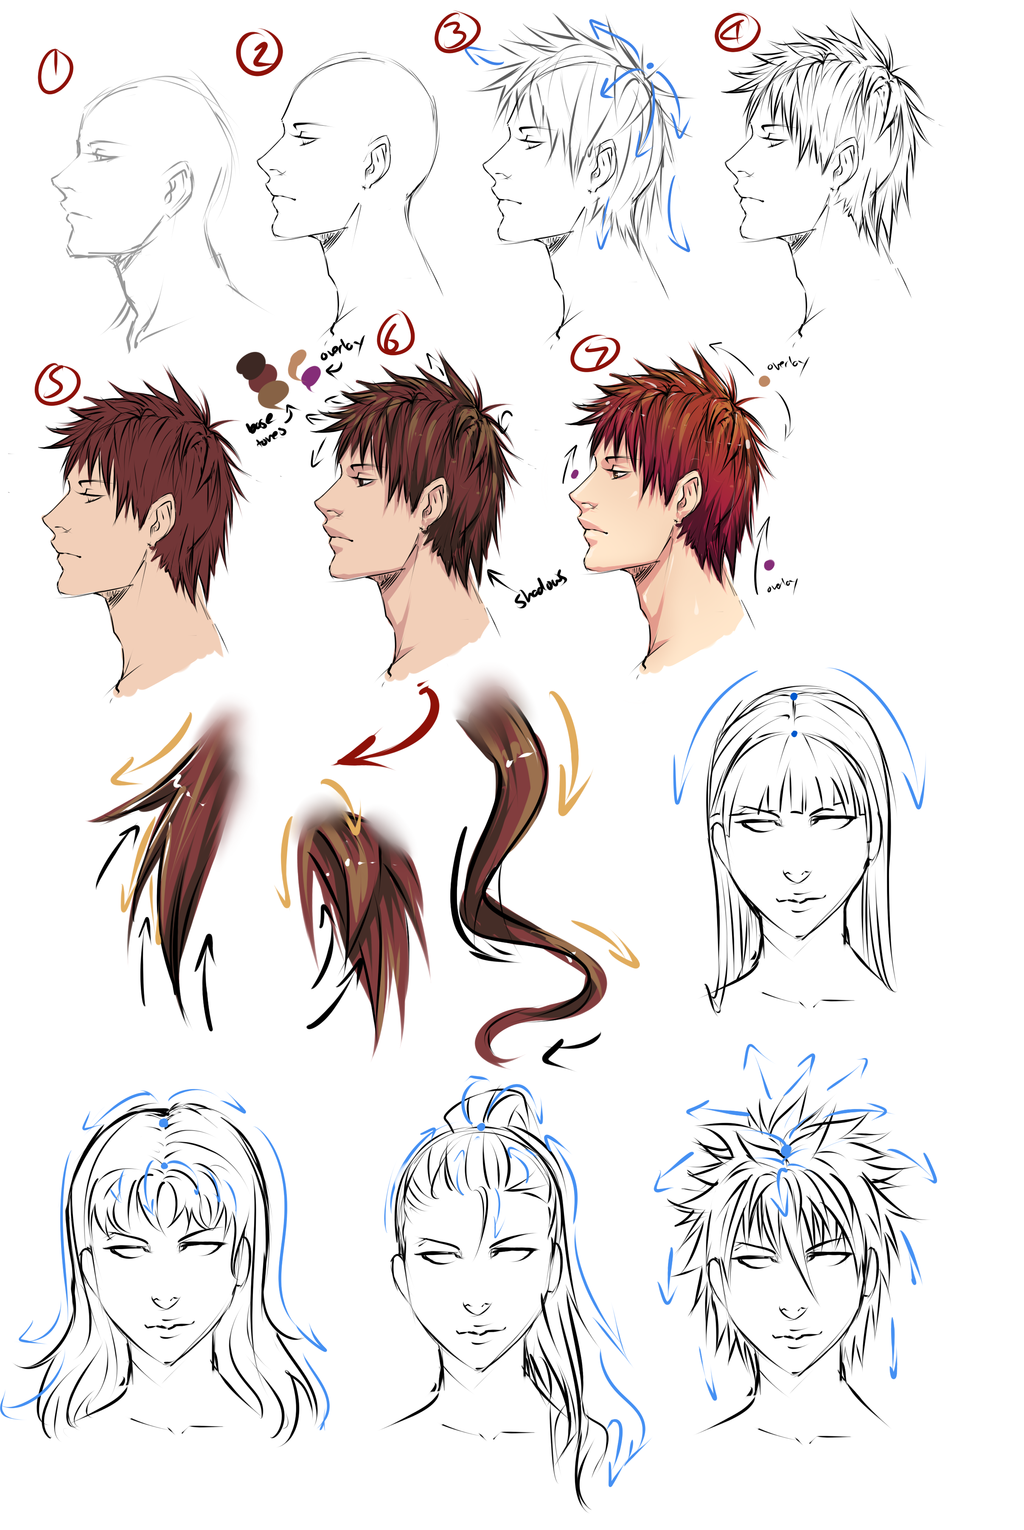 anime noses drawing at getdrawings com free for personal use anime